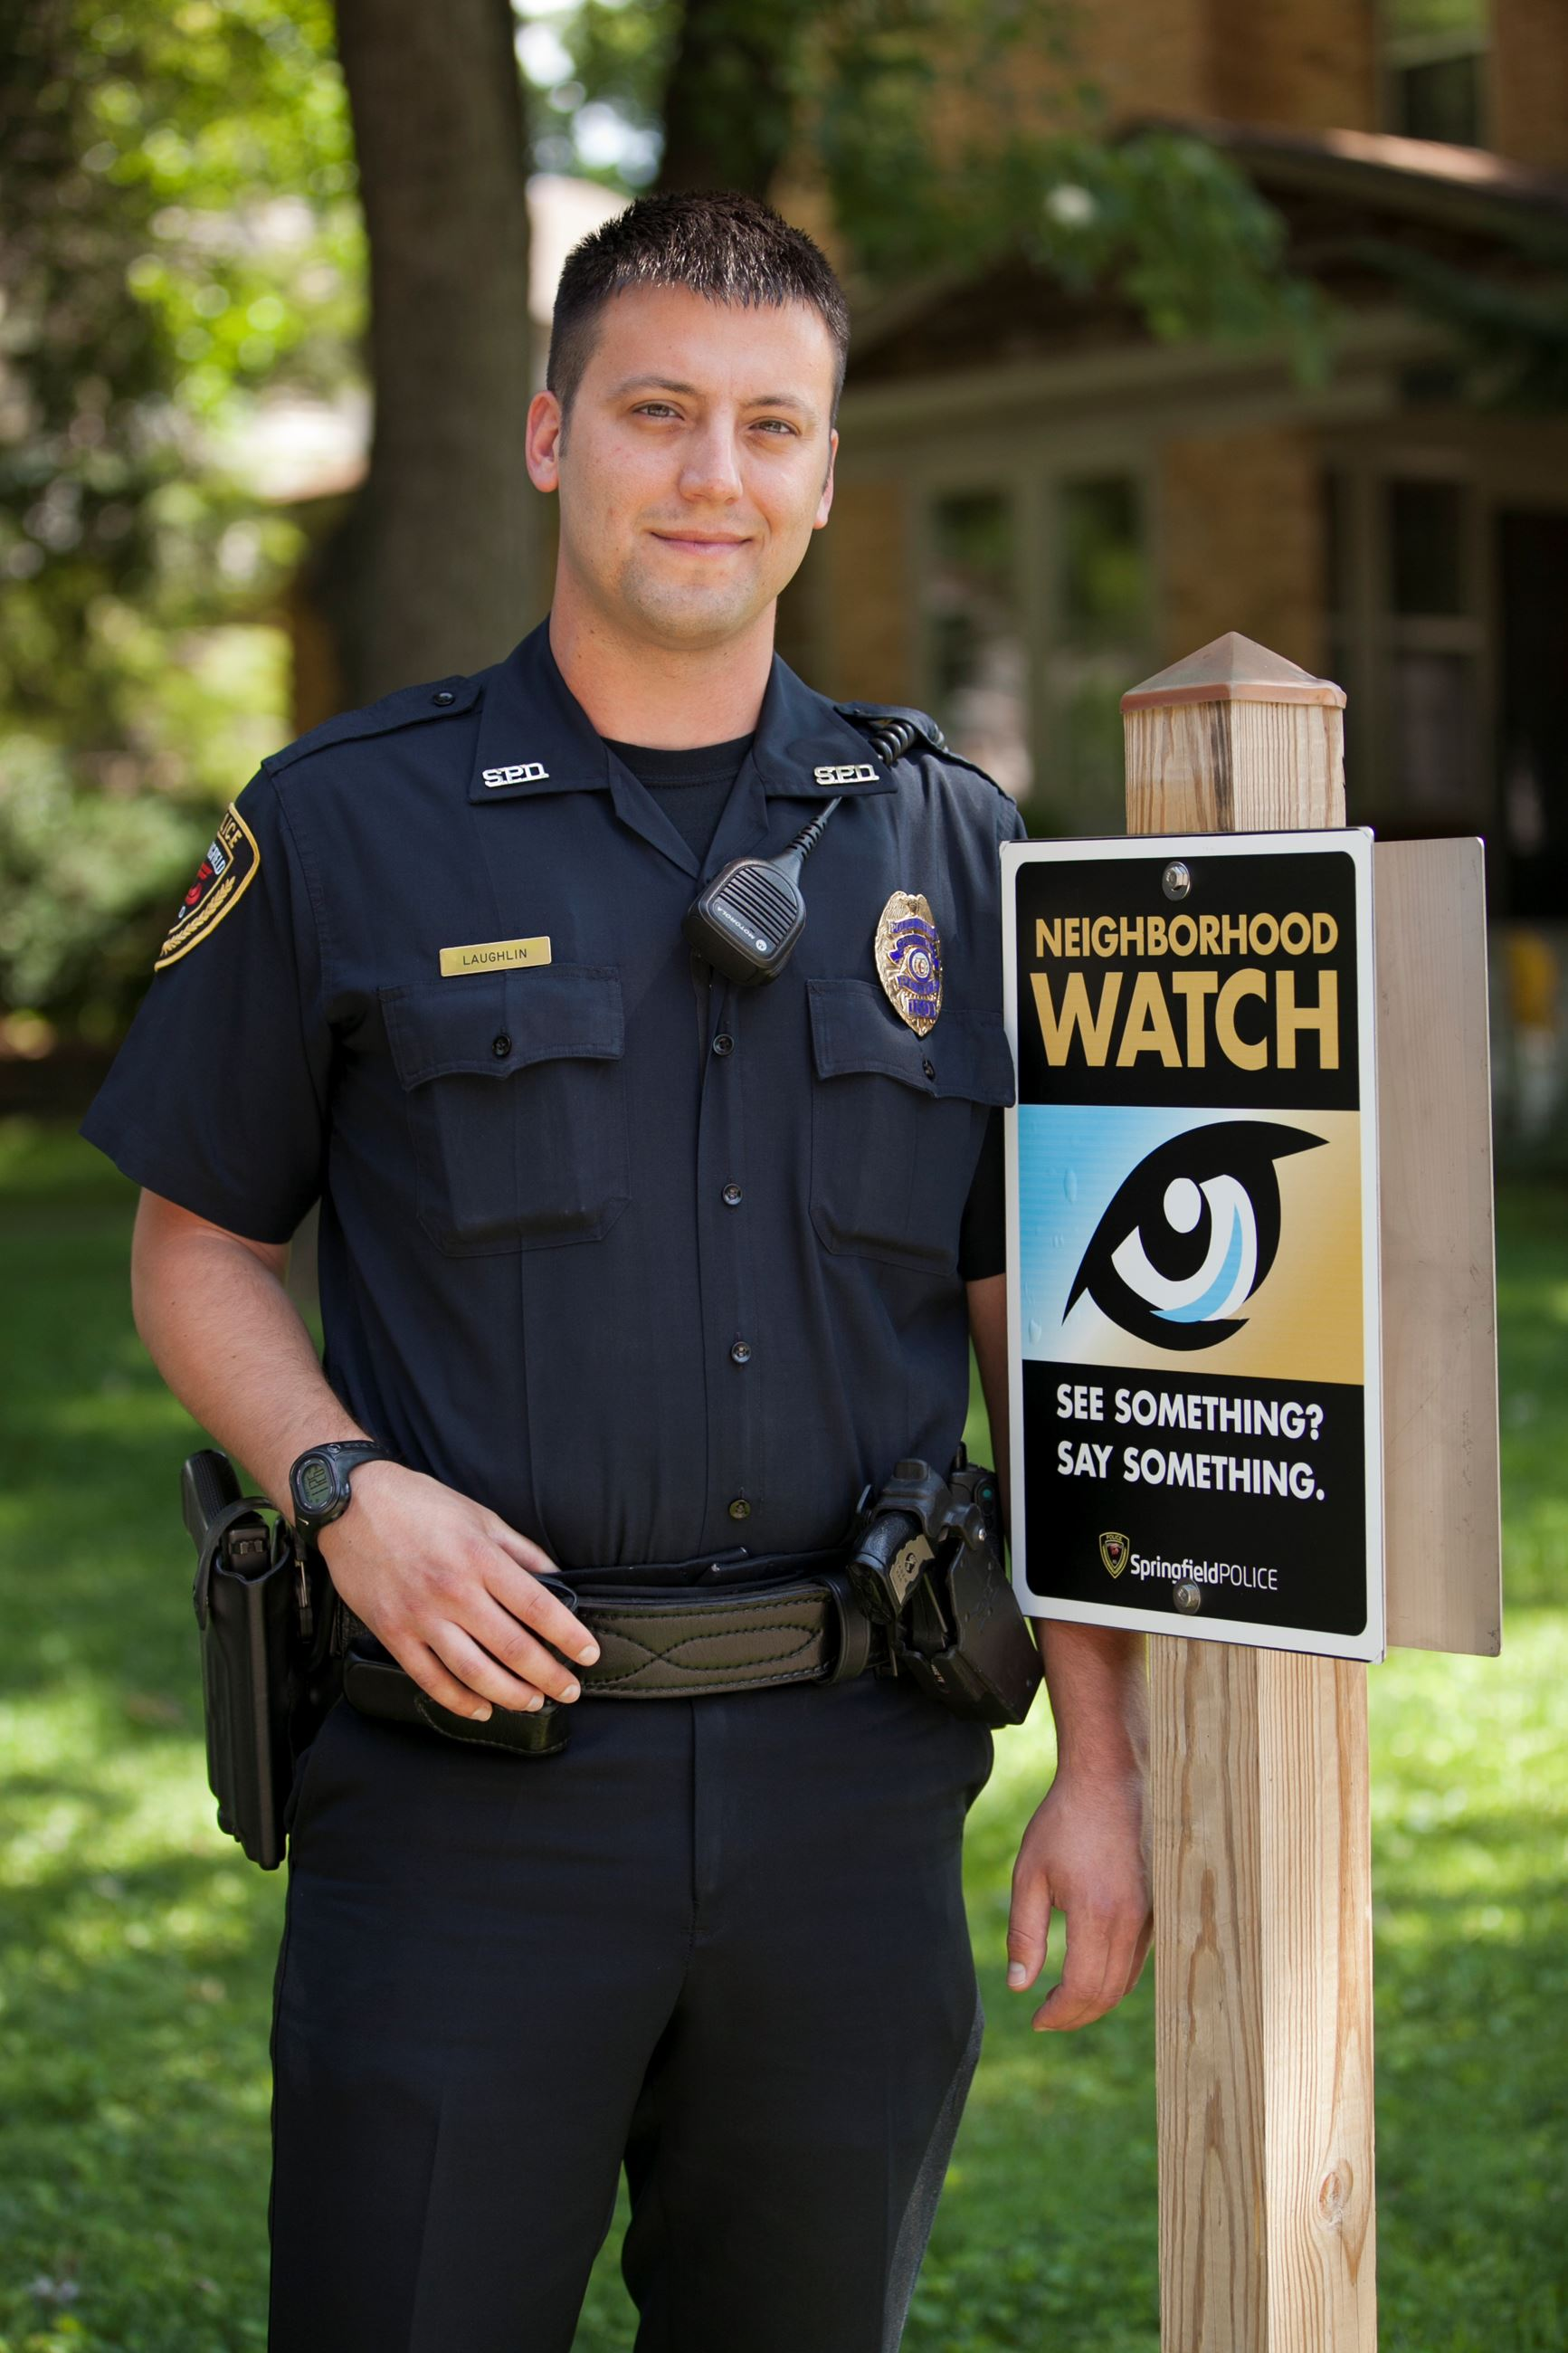 Officer Laughlin with Neighborhood Watch sign